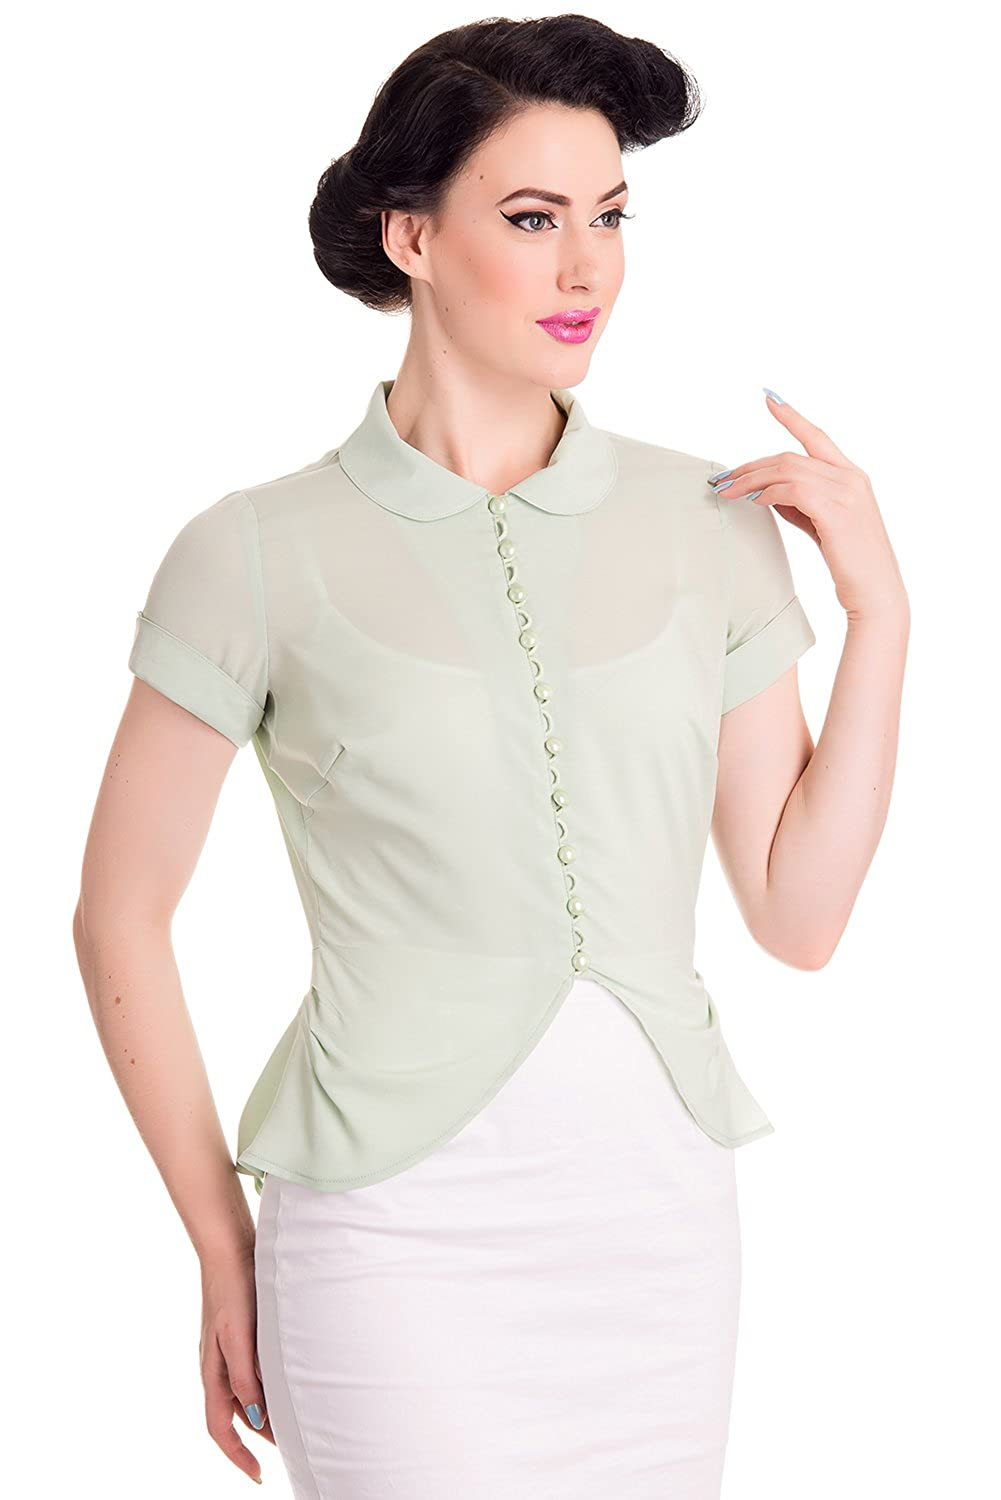 1950s Rockabilly & Pinup Tops, Shirts, Blouses Hell Bunny Betsy 40s 50s Retro Shirt Blouse Top $22.99 AT vintagedancer.com